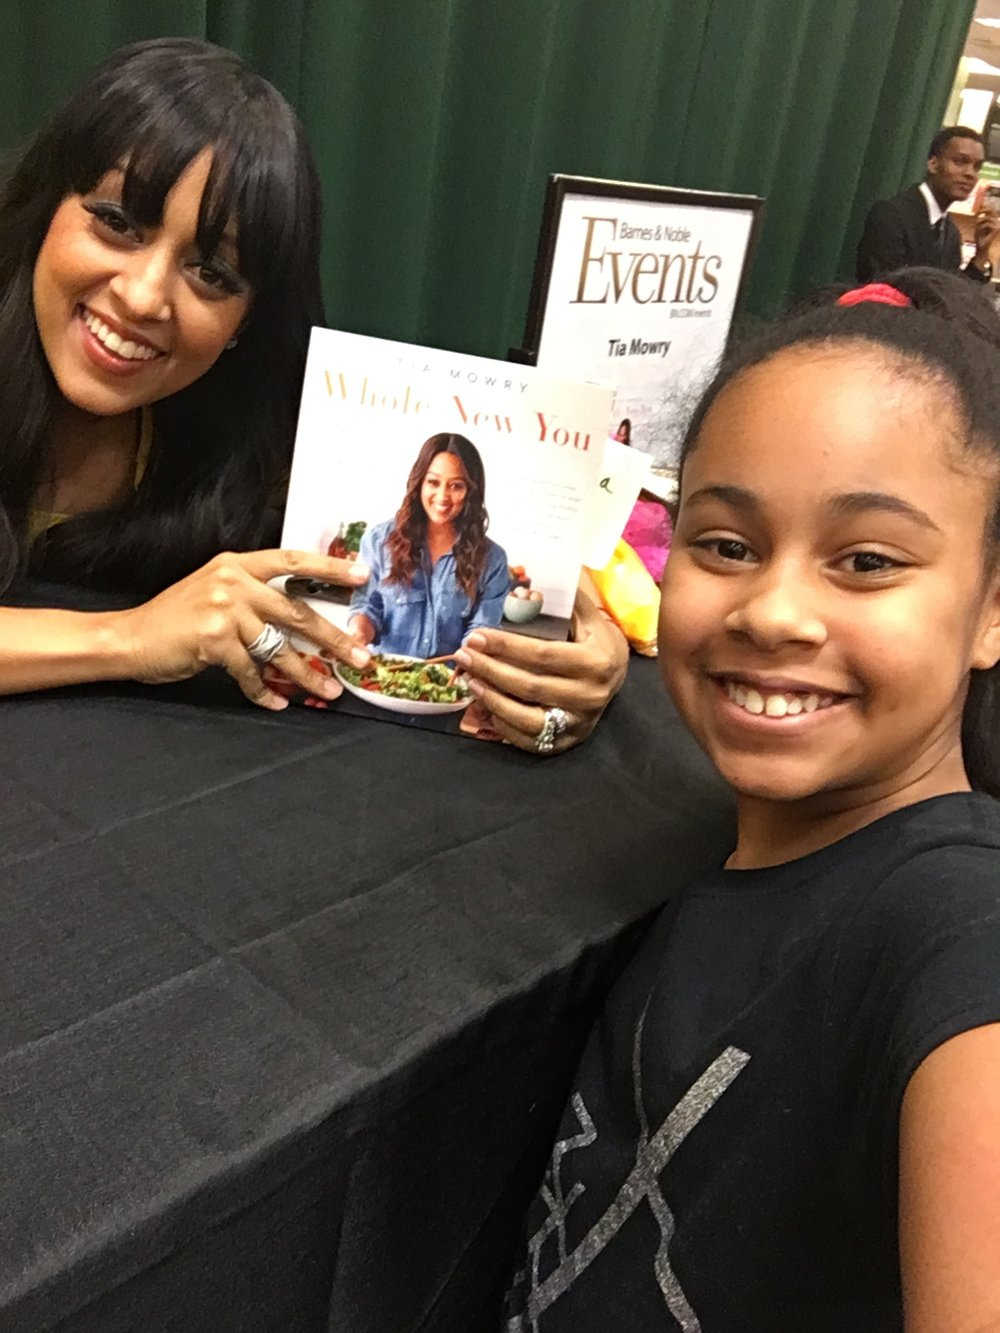 Aniyah and Tia Mowry